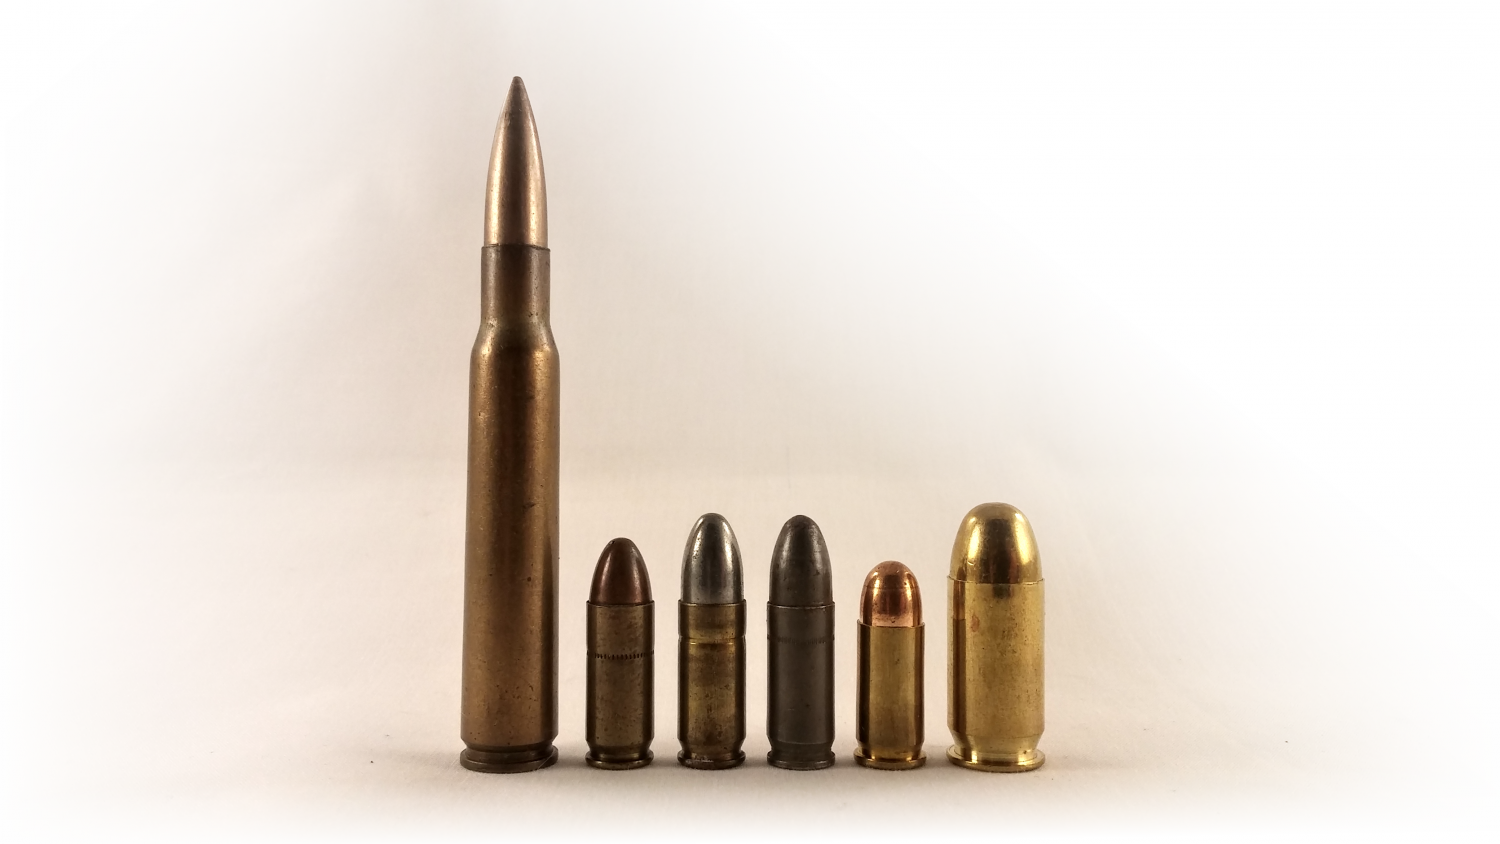 historical personal defense weapon calibers 015 the 7 65x20mm